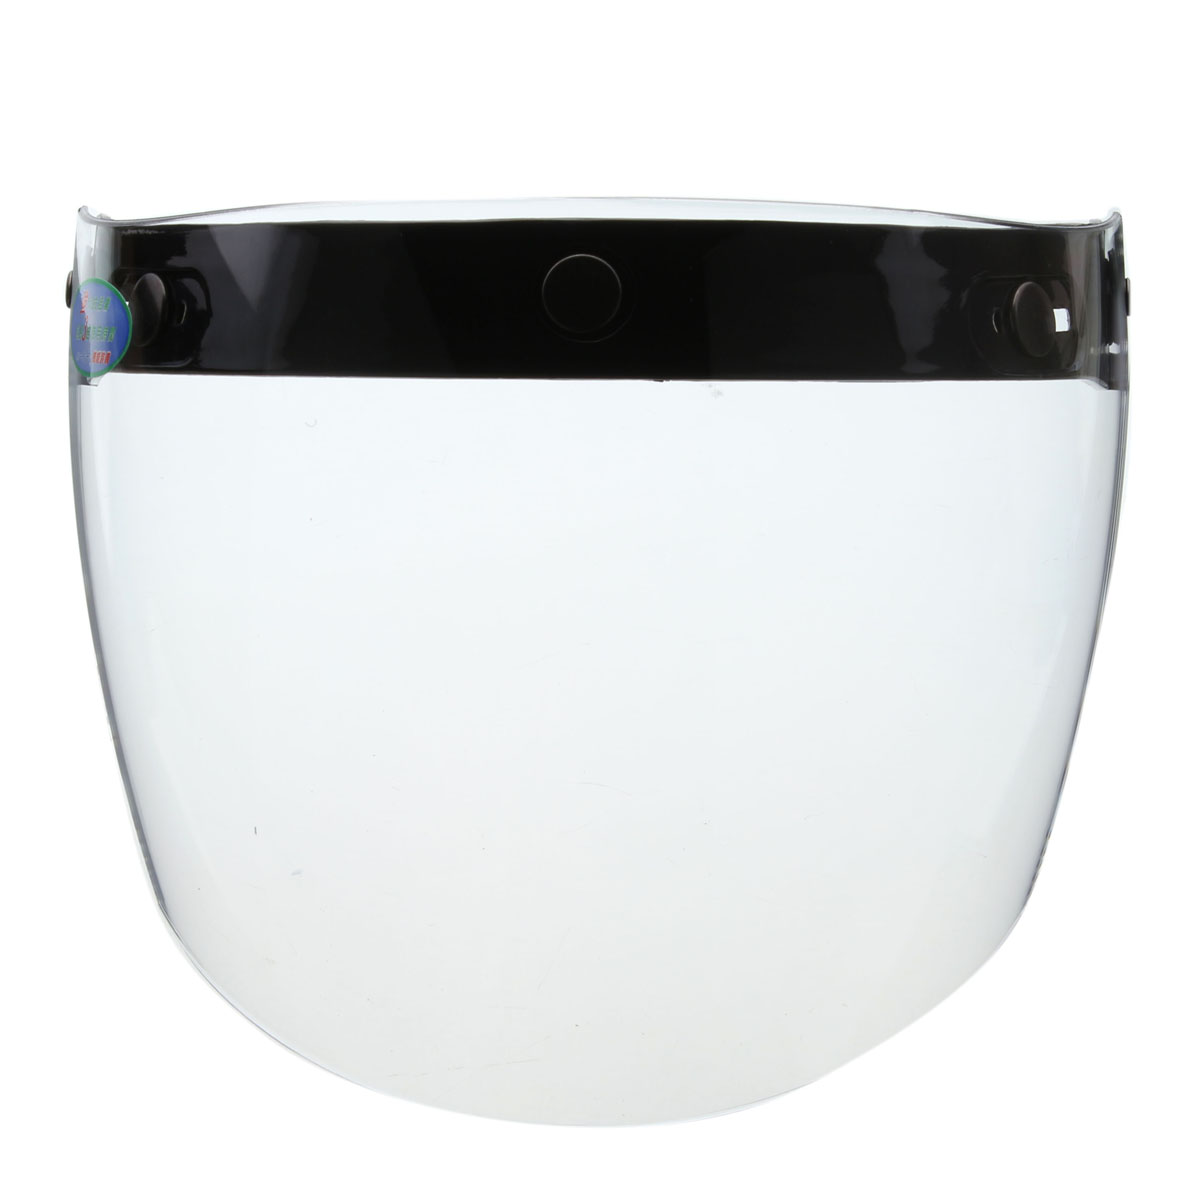 3 Snap Flip Up Visor Wind Shield Lens For Open Face Motorcycle Helmet image